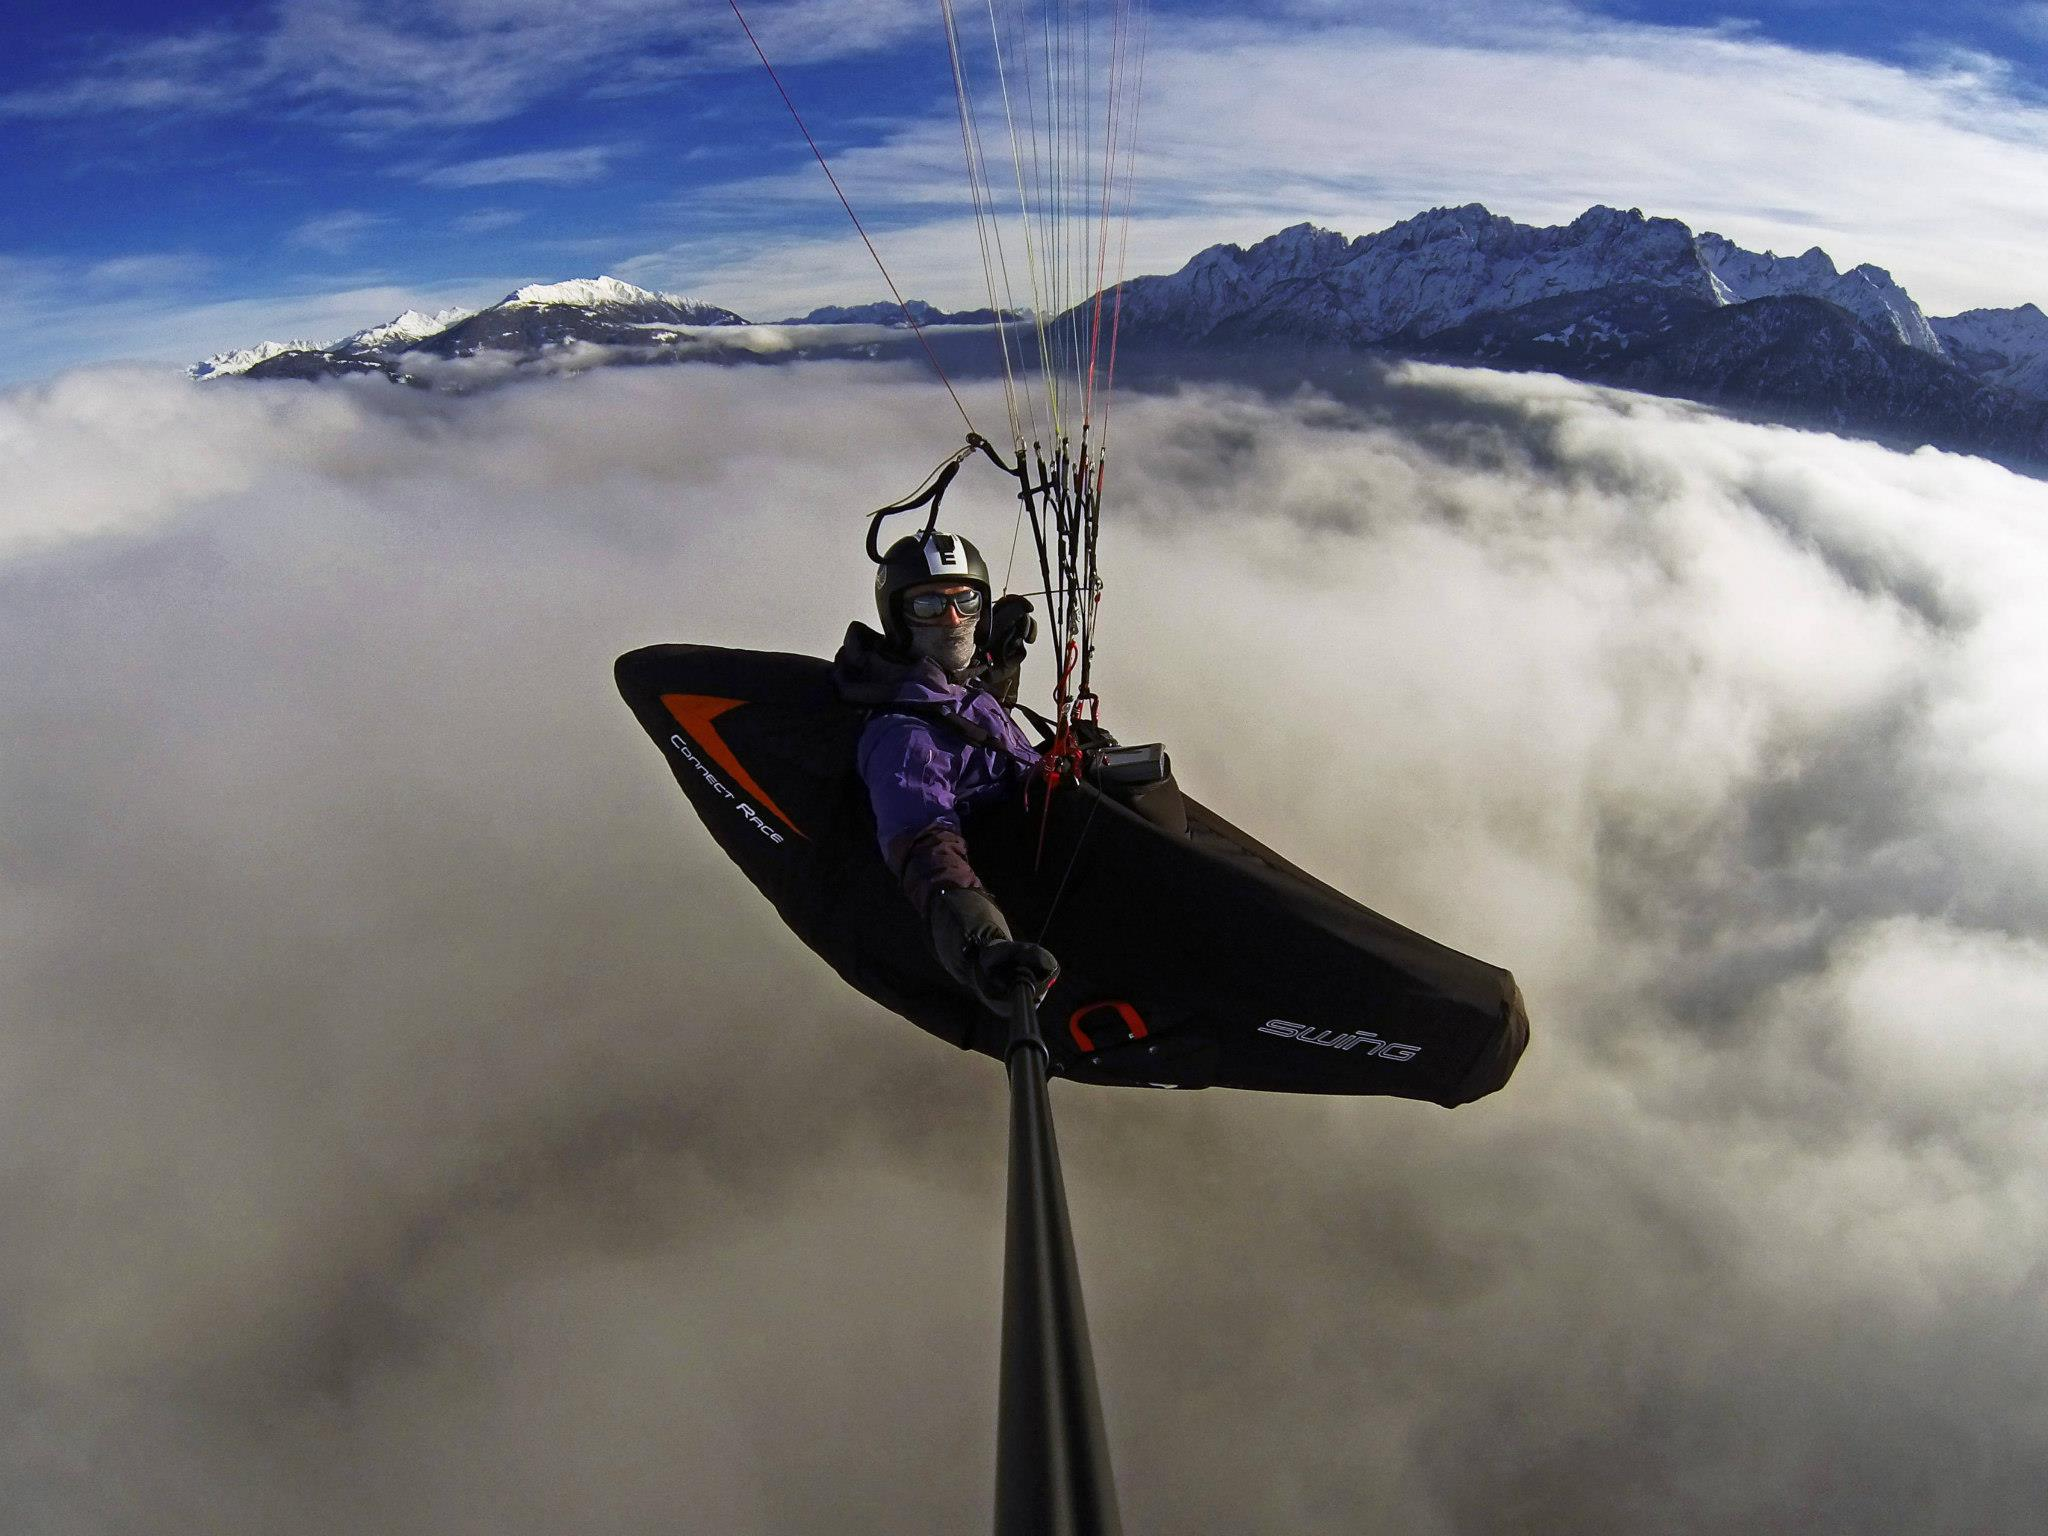 Extreme Photo of the Day